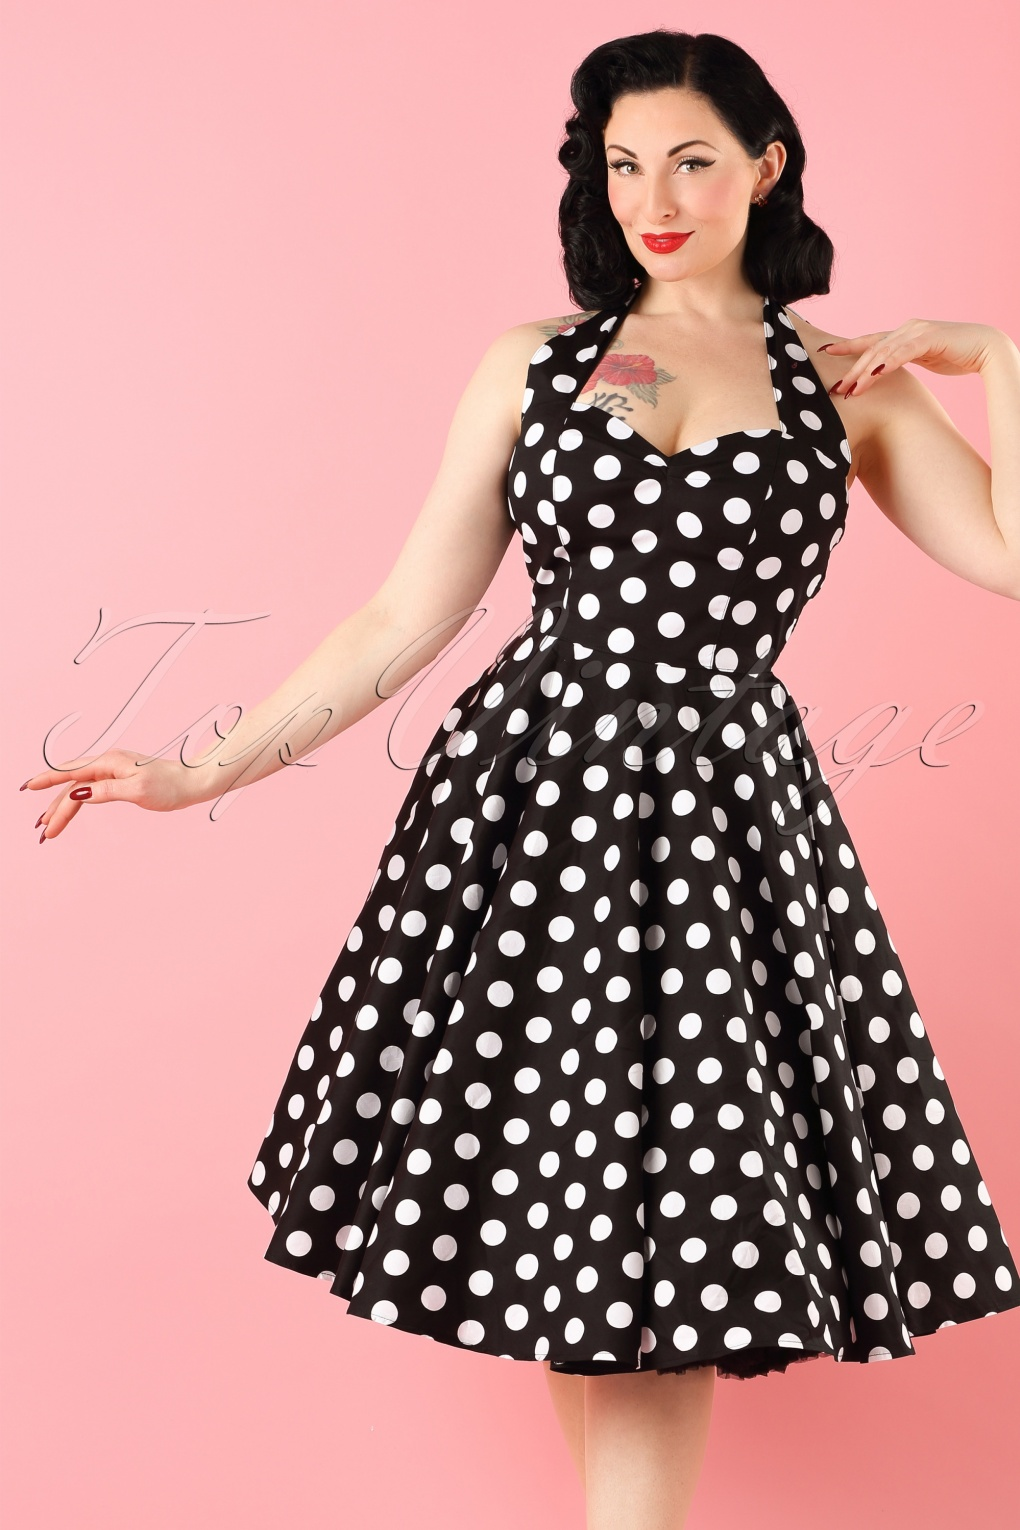 Vintage Evening Dresses 50s Retro halter 50s Meriam Swing dress in Polka black white £50.94 AT vintagedancer.com